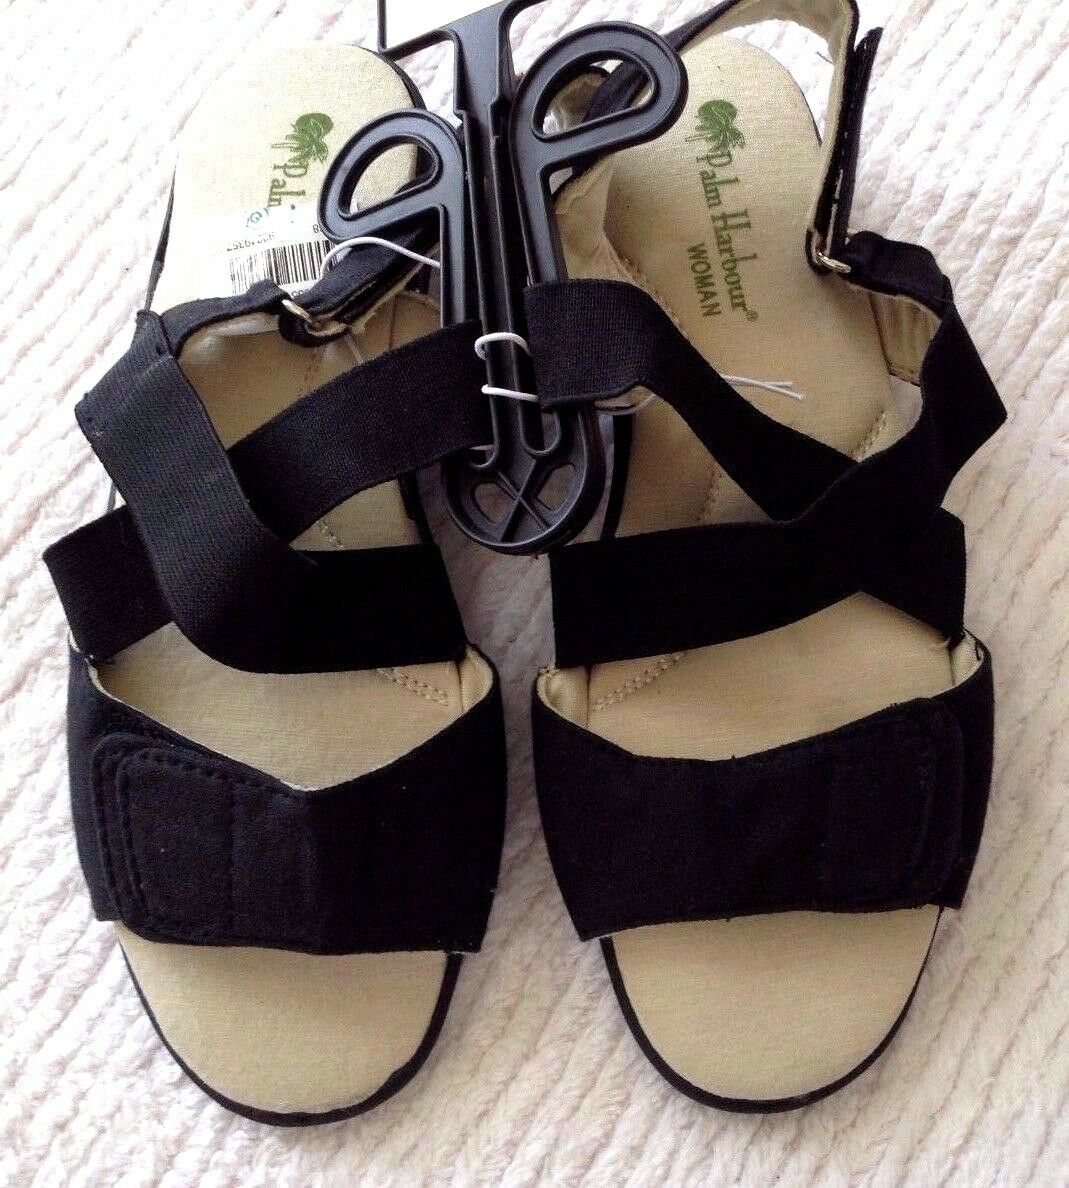 Women's 5.0 Black Sandals/Shoes Palm Harbour Box  Low New w/o Box Harbour 057924